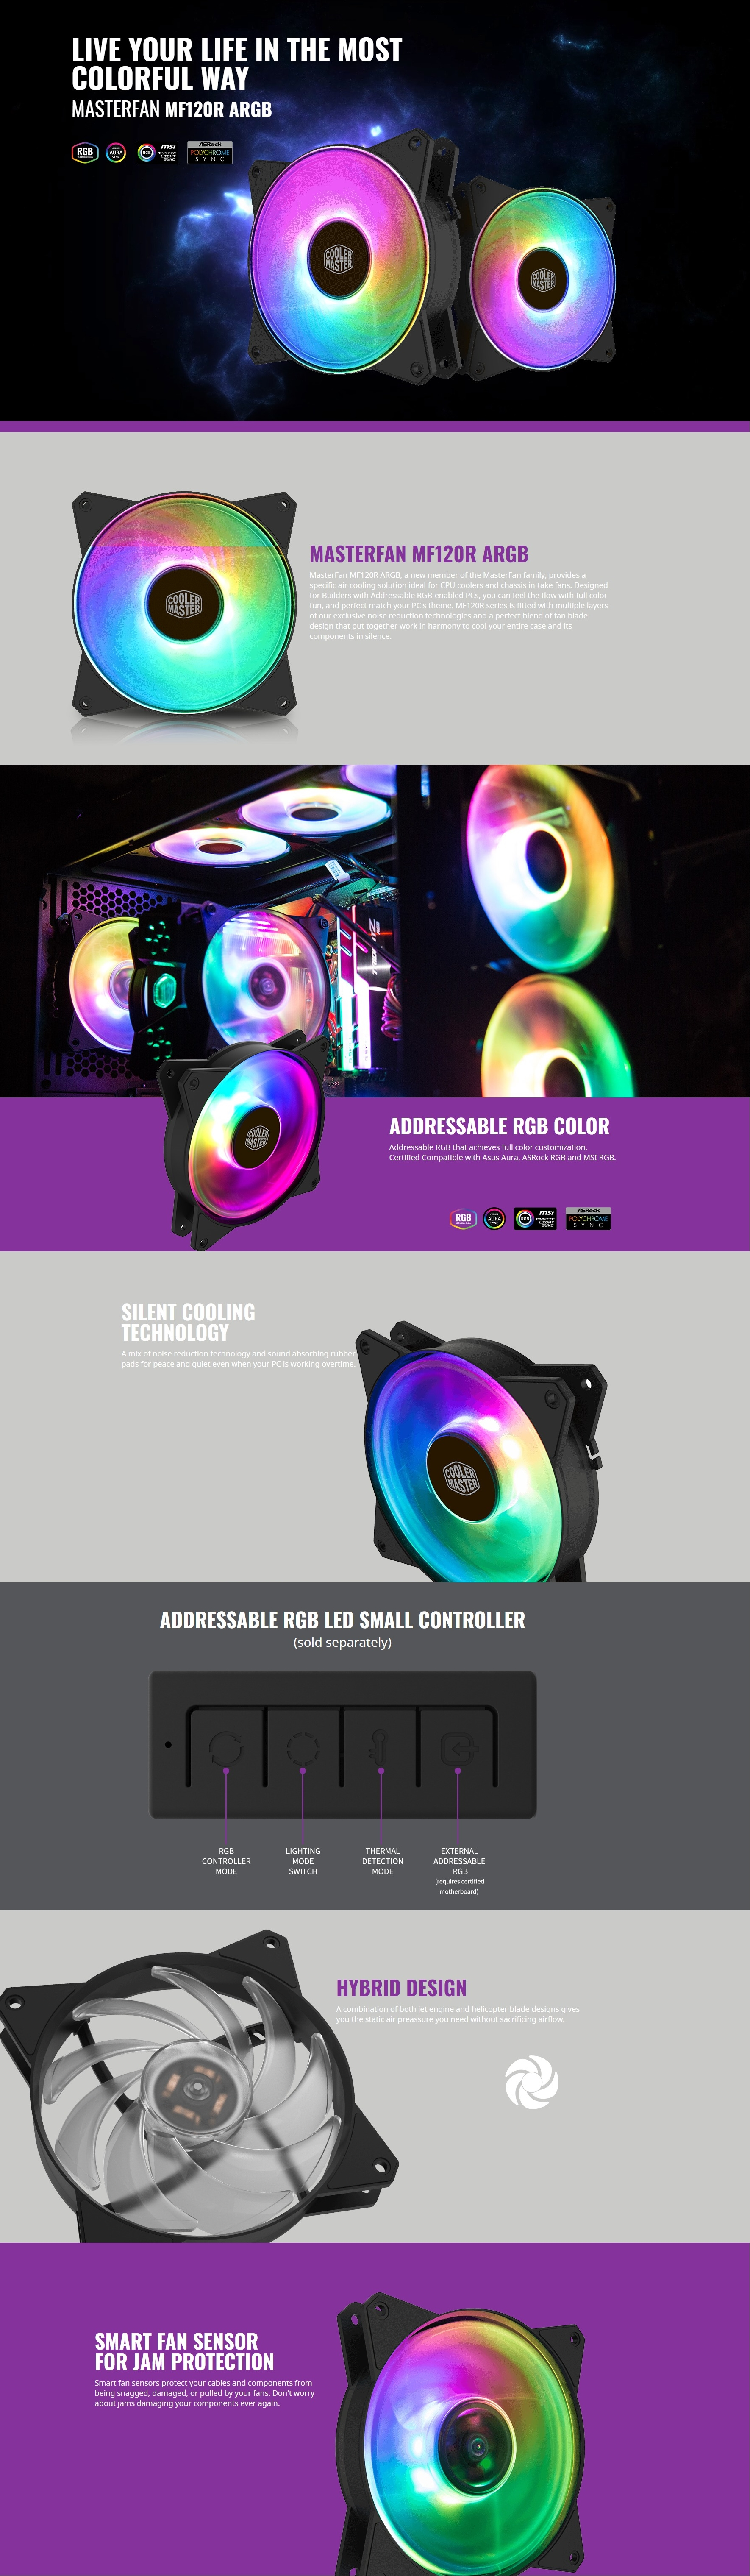 A large marketing image providing additional information about the product Cooler Master MasterFan MF120R ARGB 120mm Fan - Additional alt info not provided